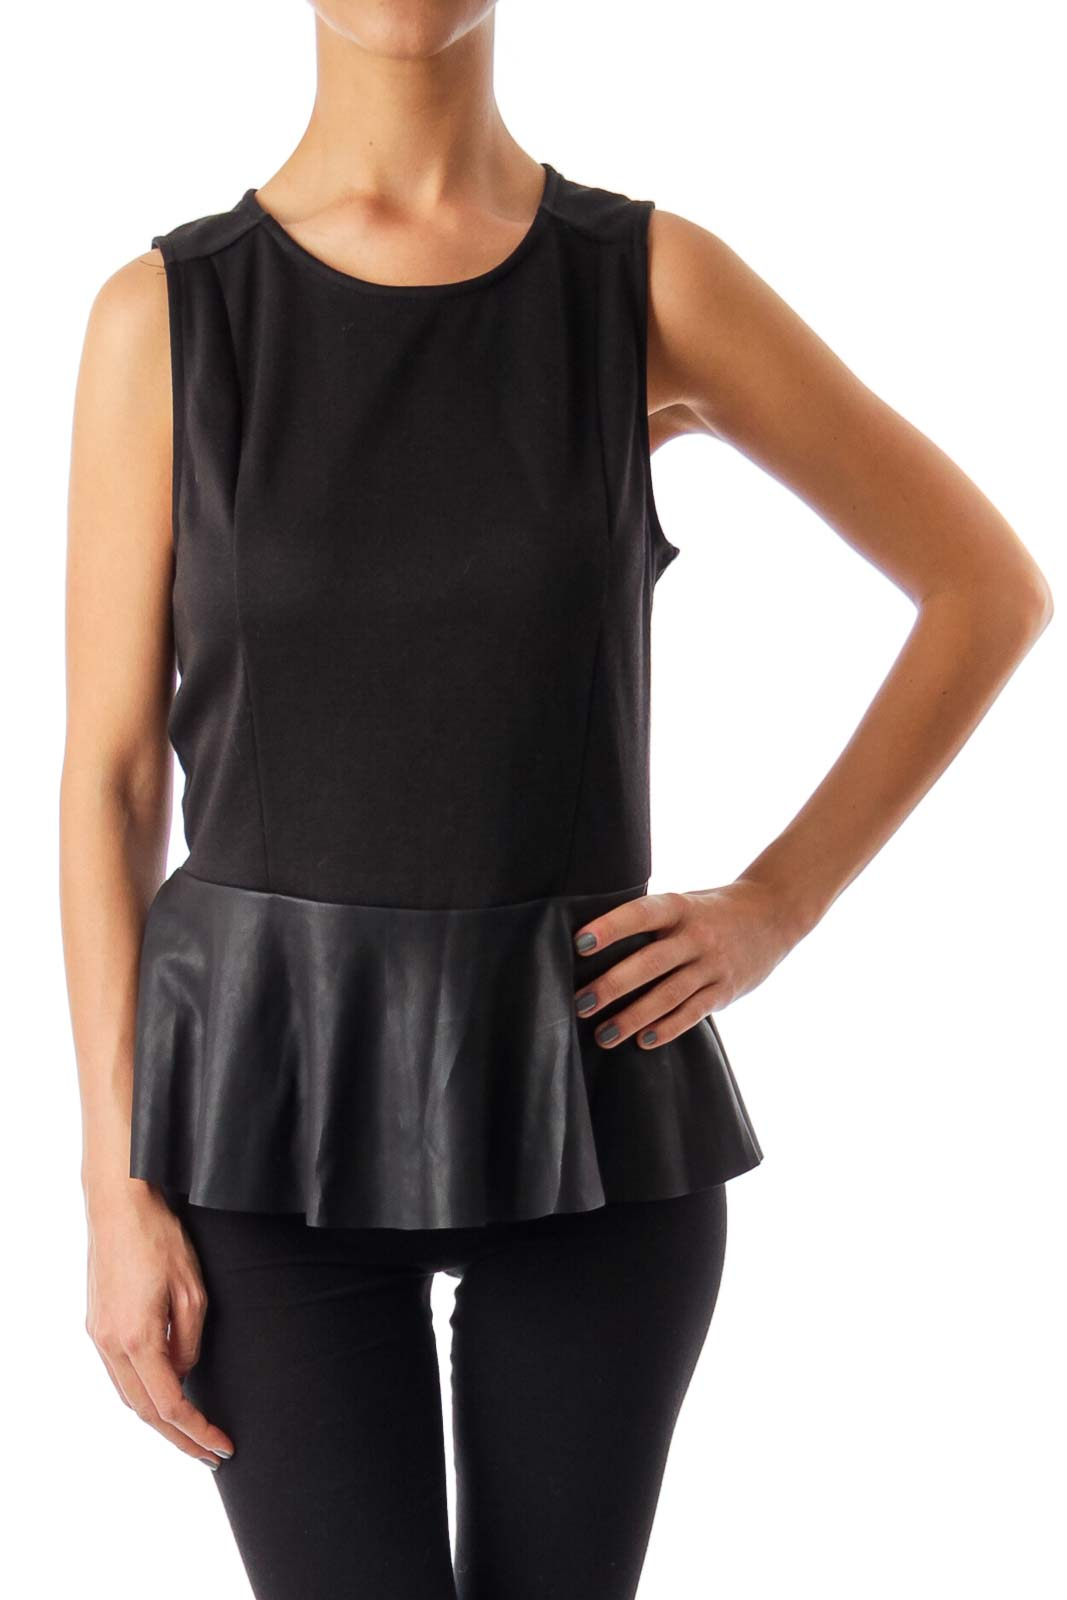 Black Back Zip Up Sleeveless Top Front